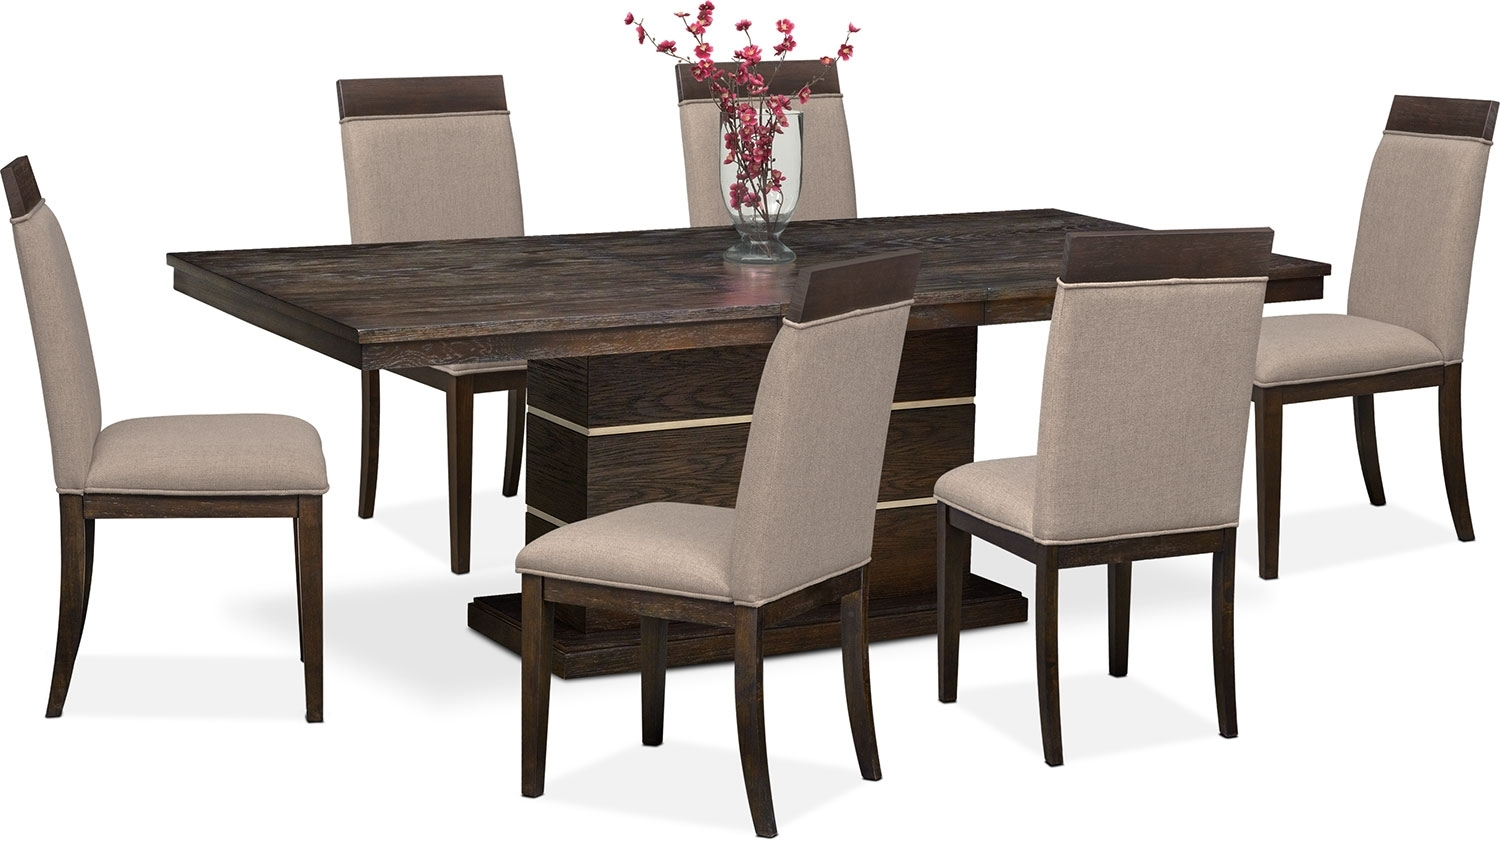 Gavin Pedestal Table And 6 Side Chairs – Brownstone | Value City With Regard To 2018 Gavin 7 Piece Dining Sets With Clint Side Chairs (Photo 8 of 20)